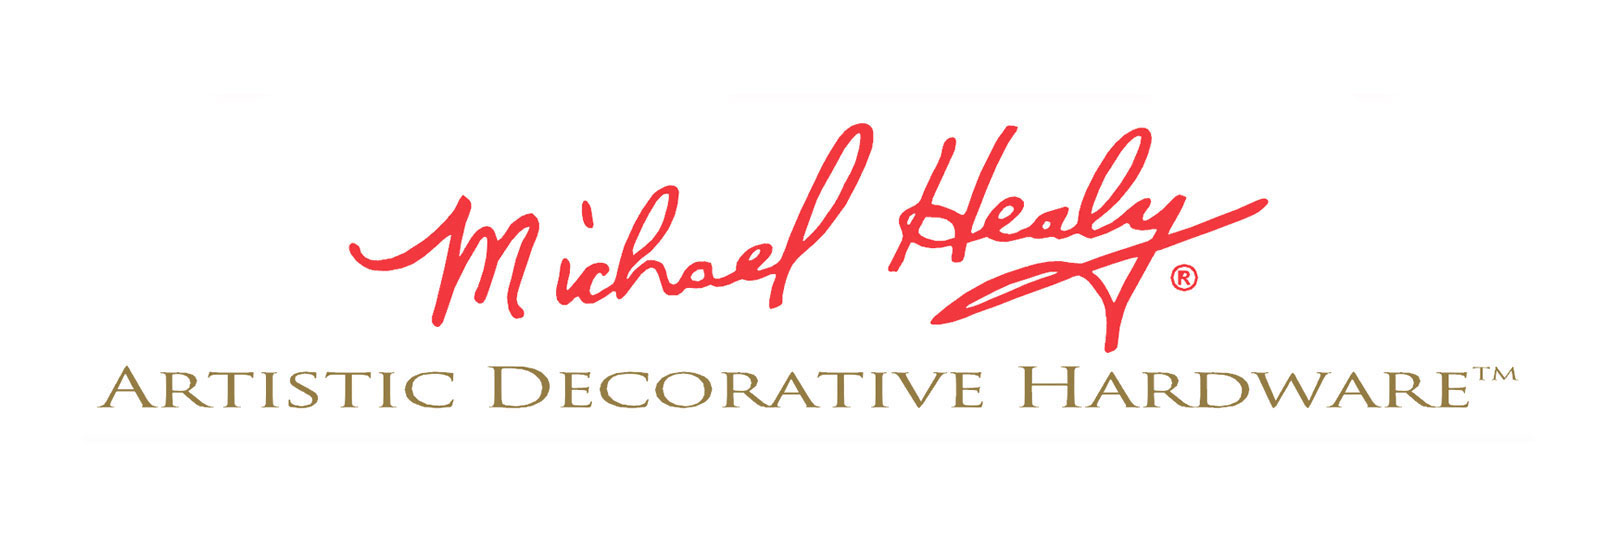 Michael Healy Designs